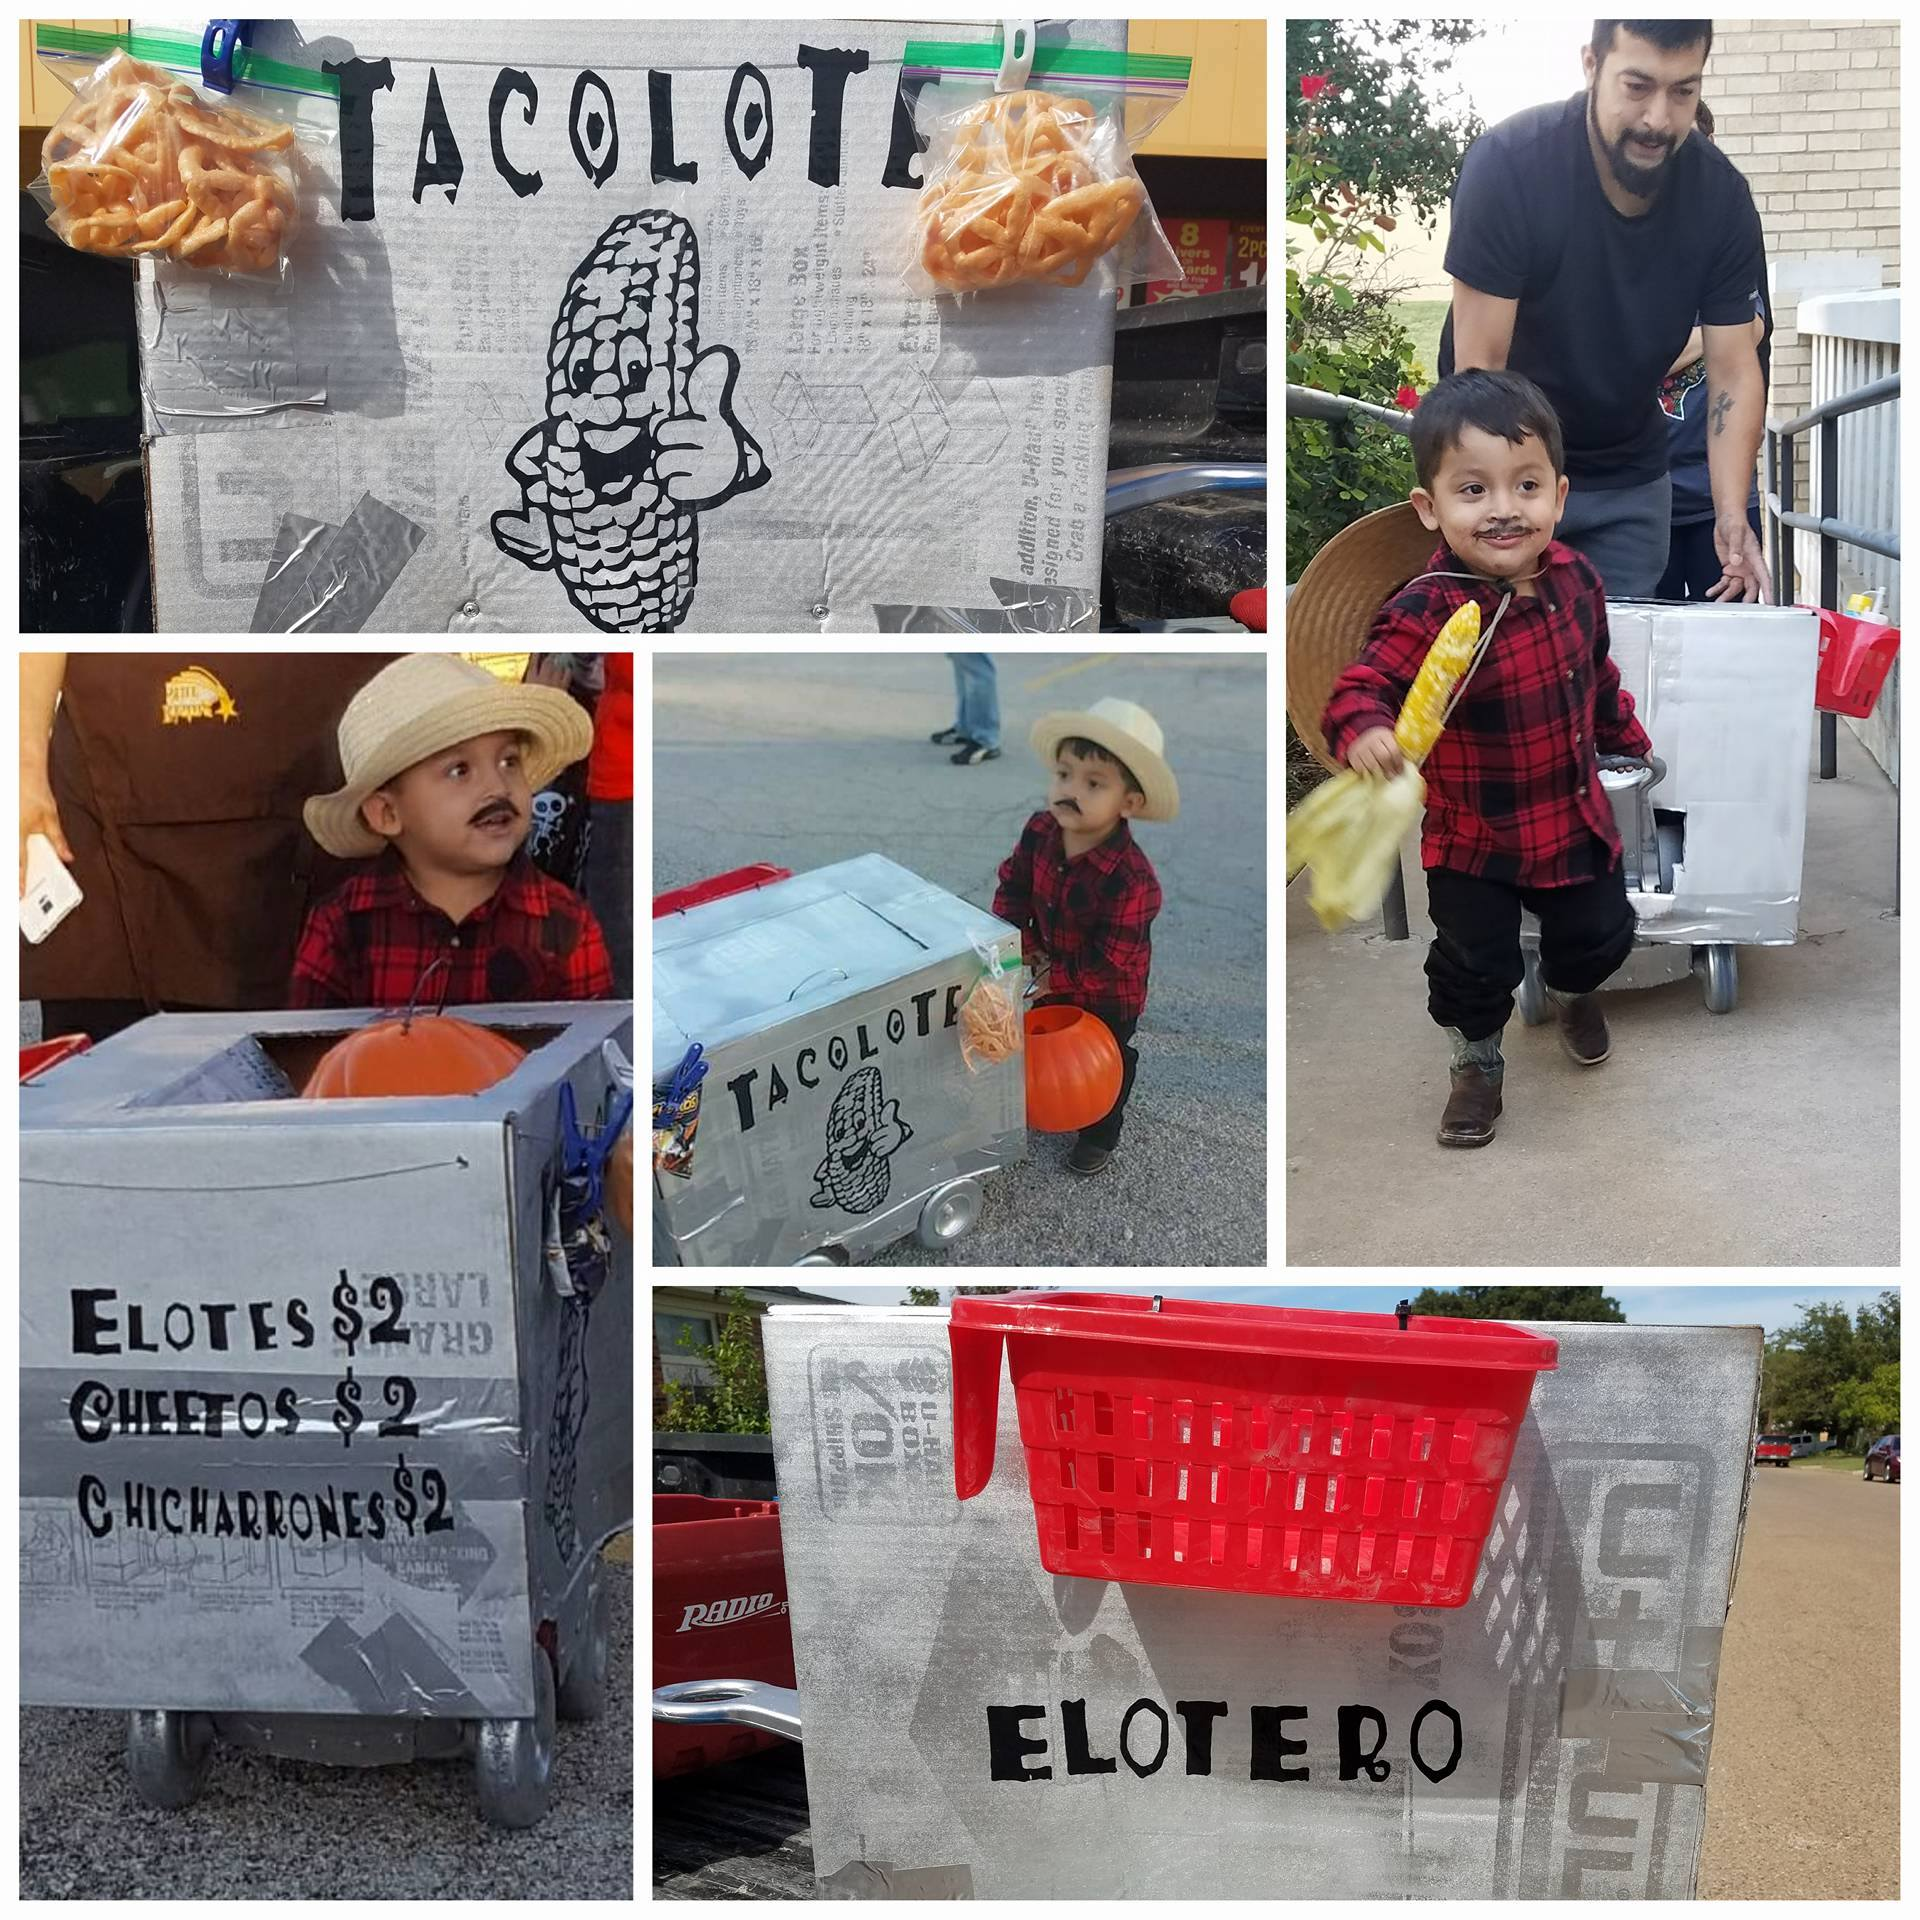 David Torres, 2 --Â?His mom tells us he's an Elotero.